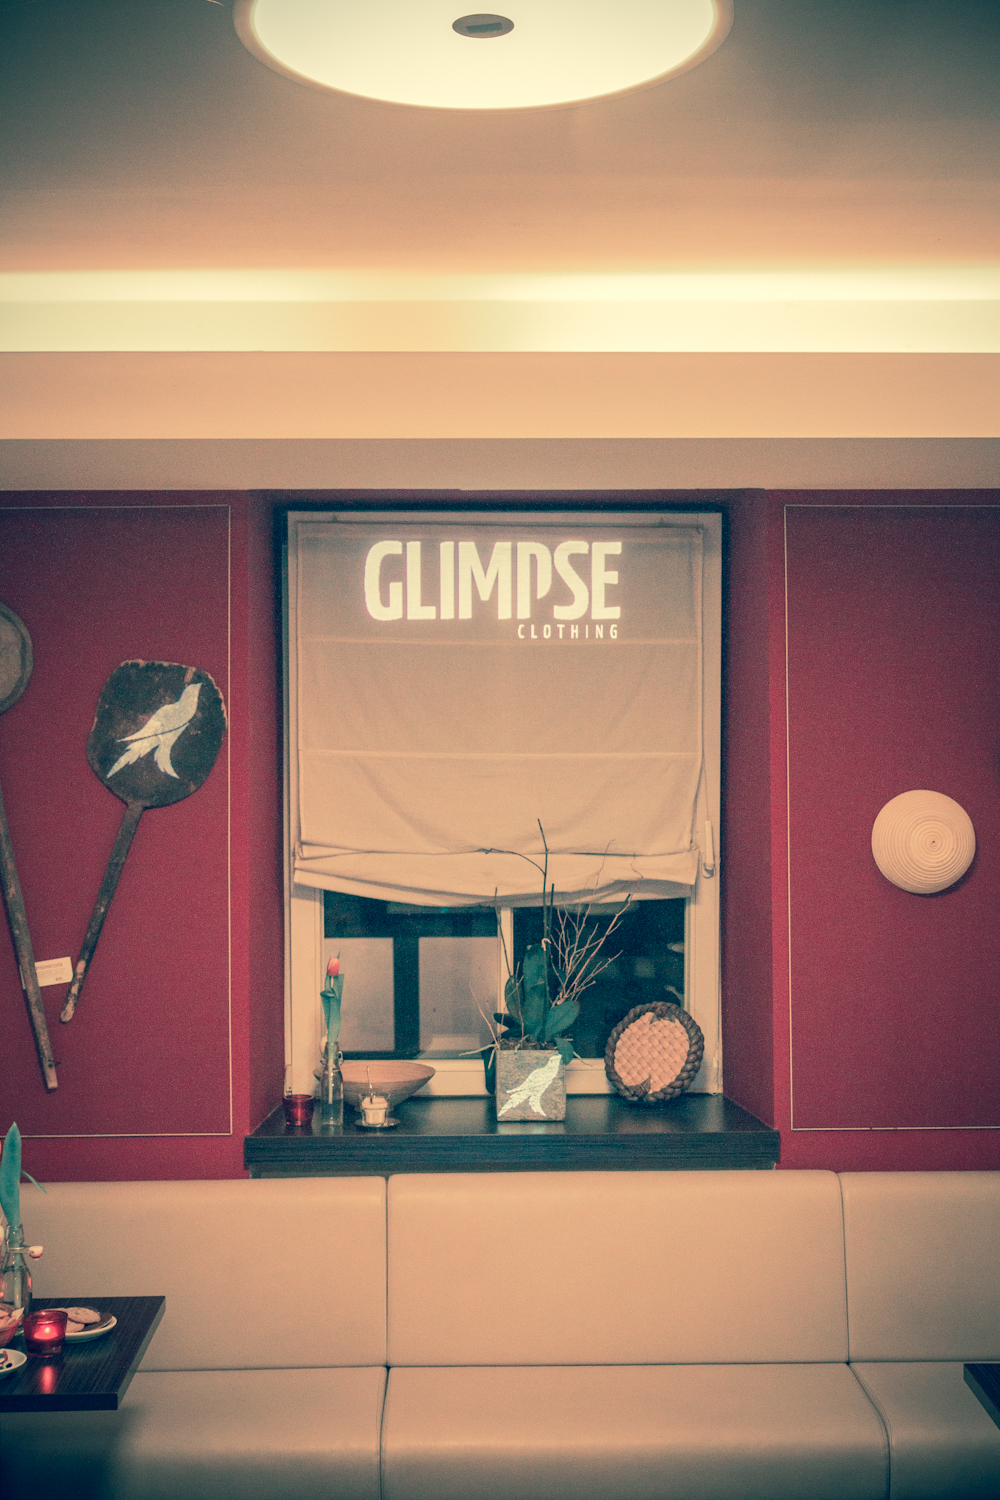 Glimpse_Party-5.jpg